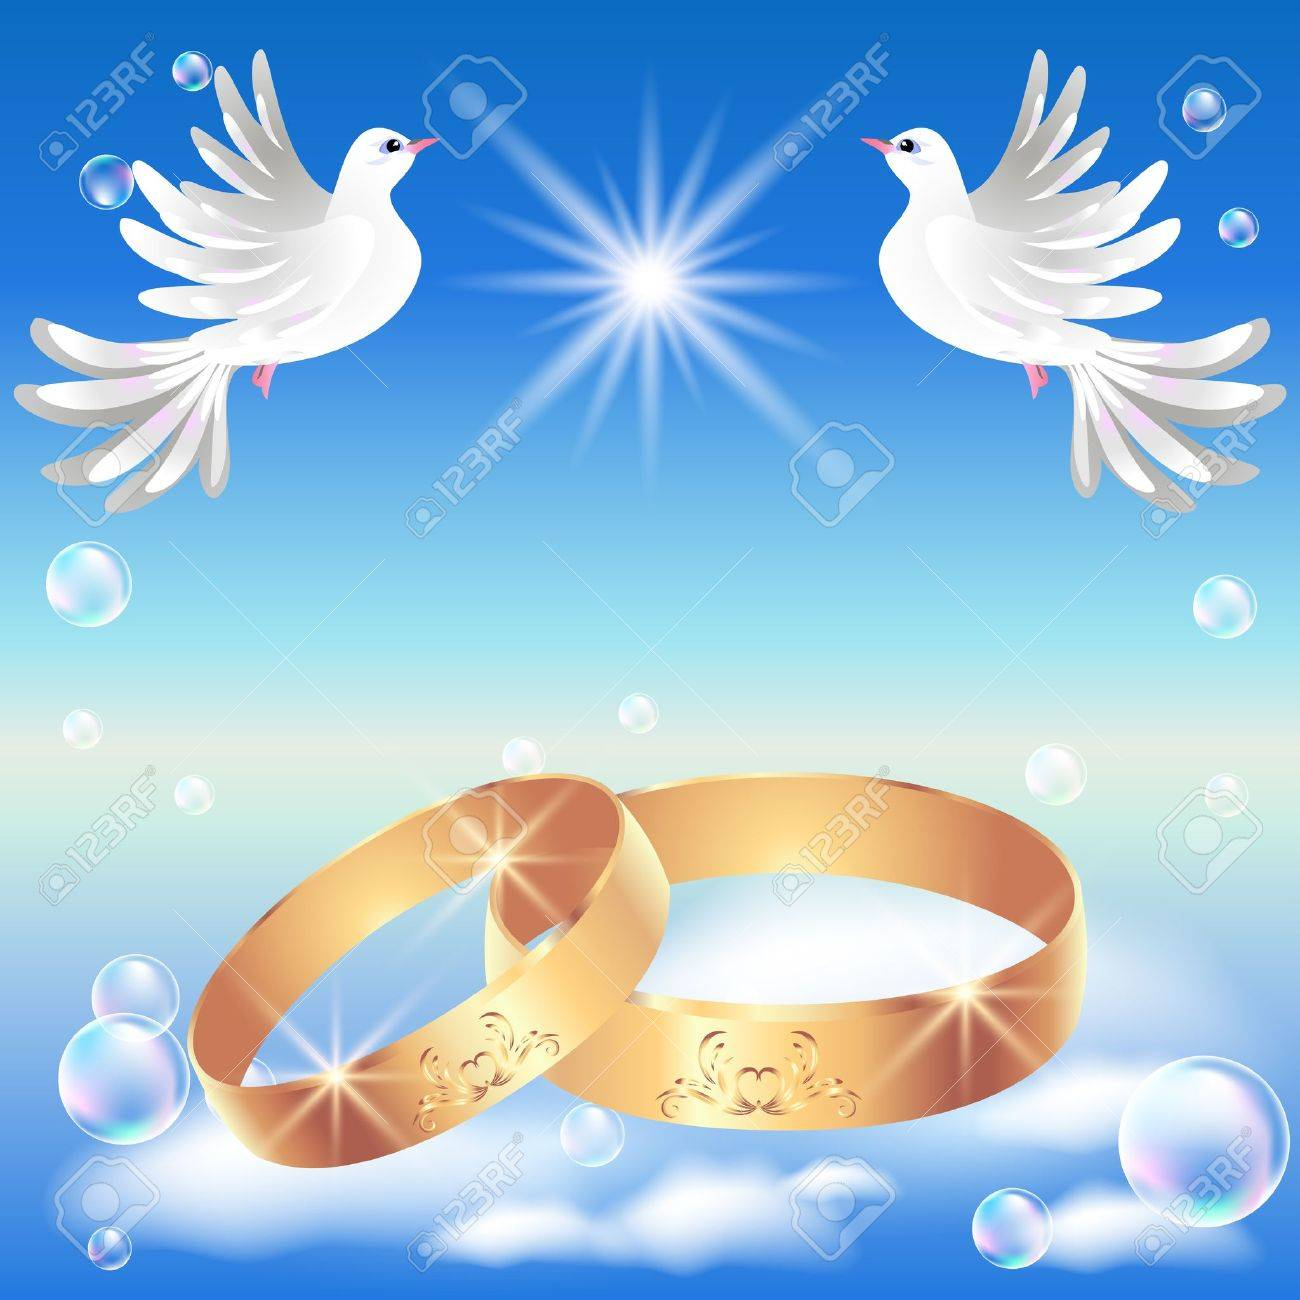 Card With Wedding Ring And Dove In The Clouds Stock Vector